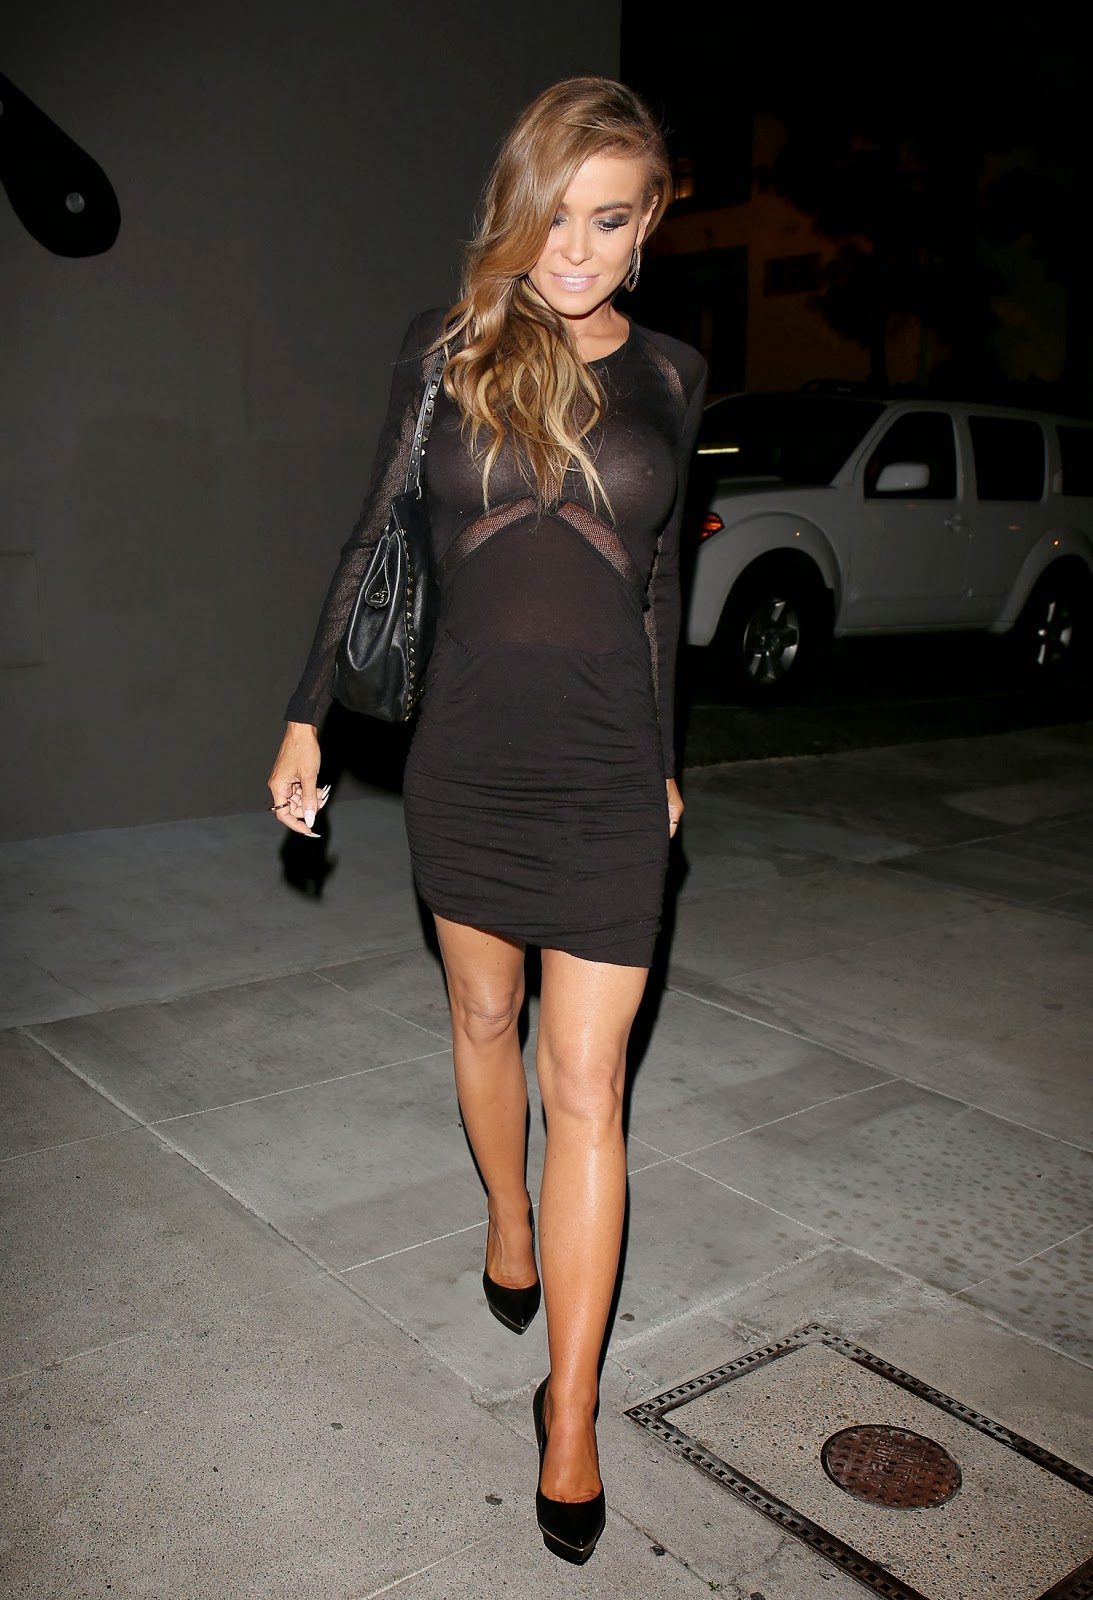 Carmen Electra shocks as see-through dress exposes nipples ...